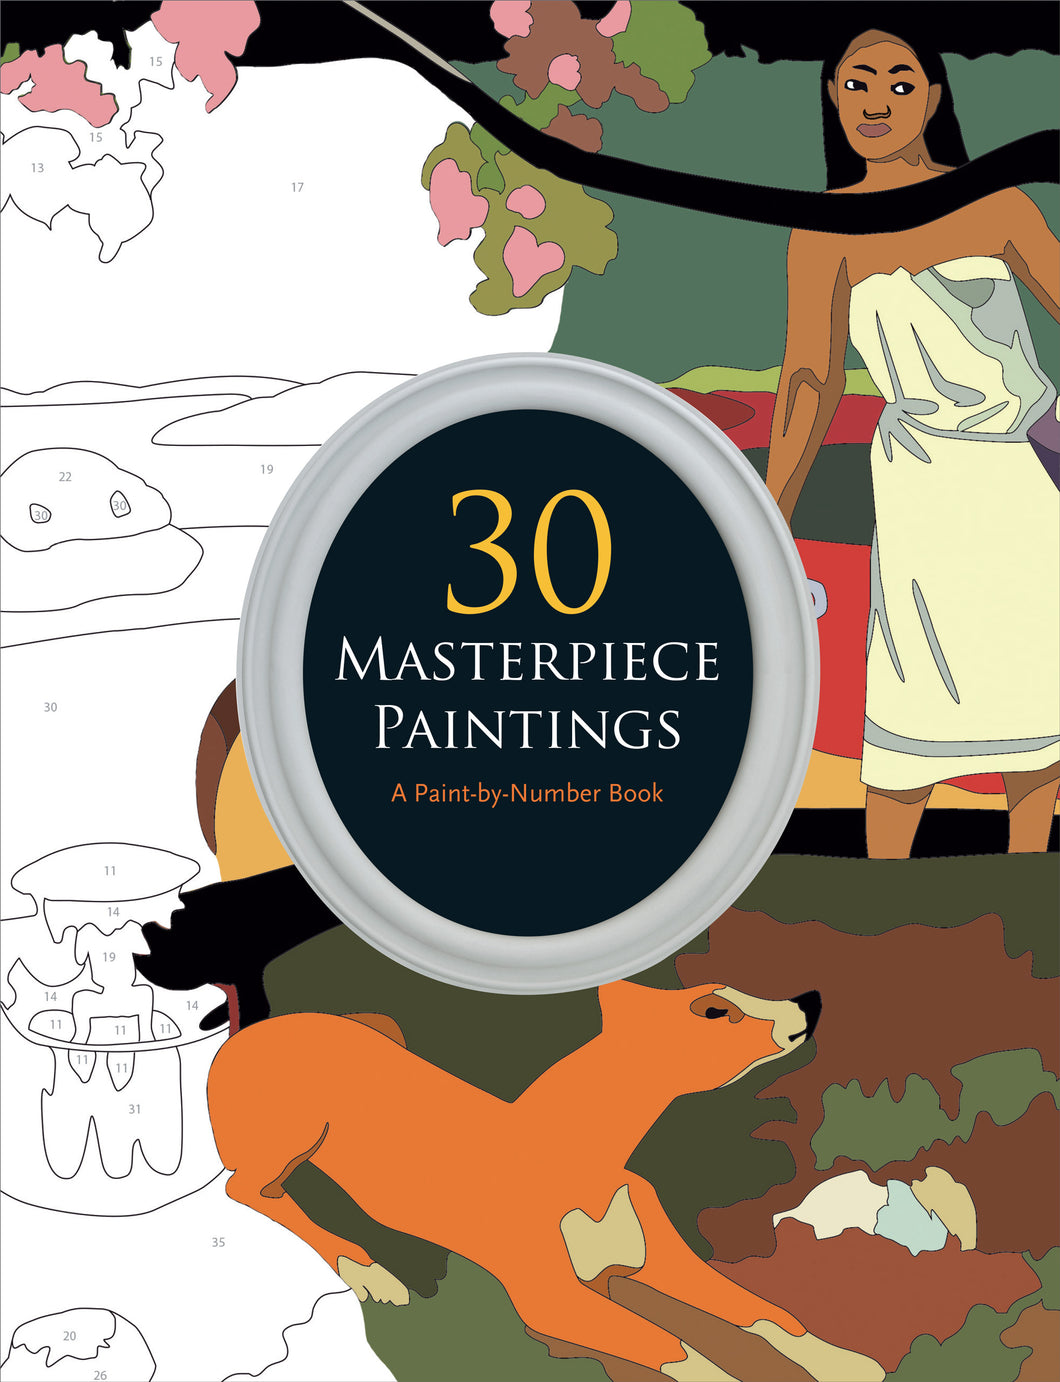 30 Masterpiece Paintings, A Paint by Number Book